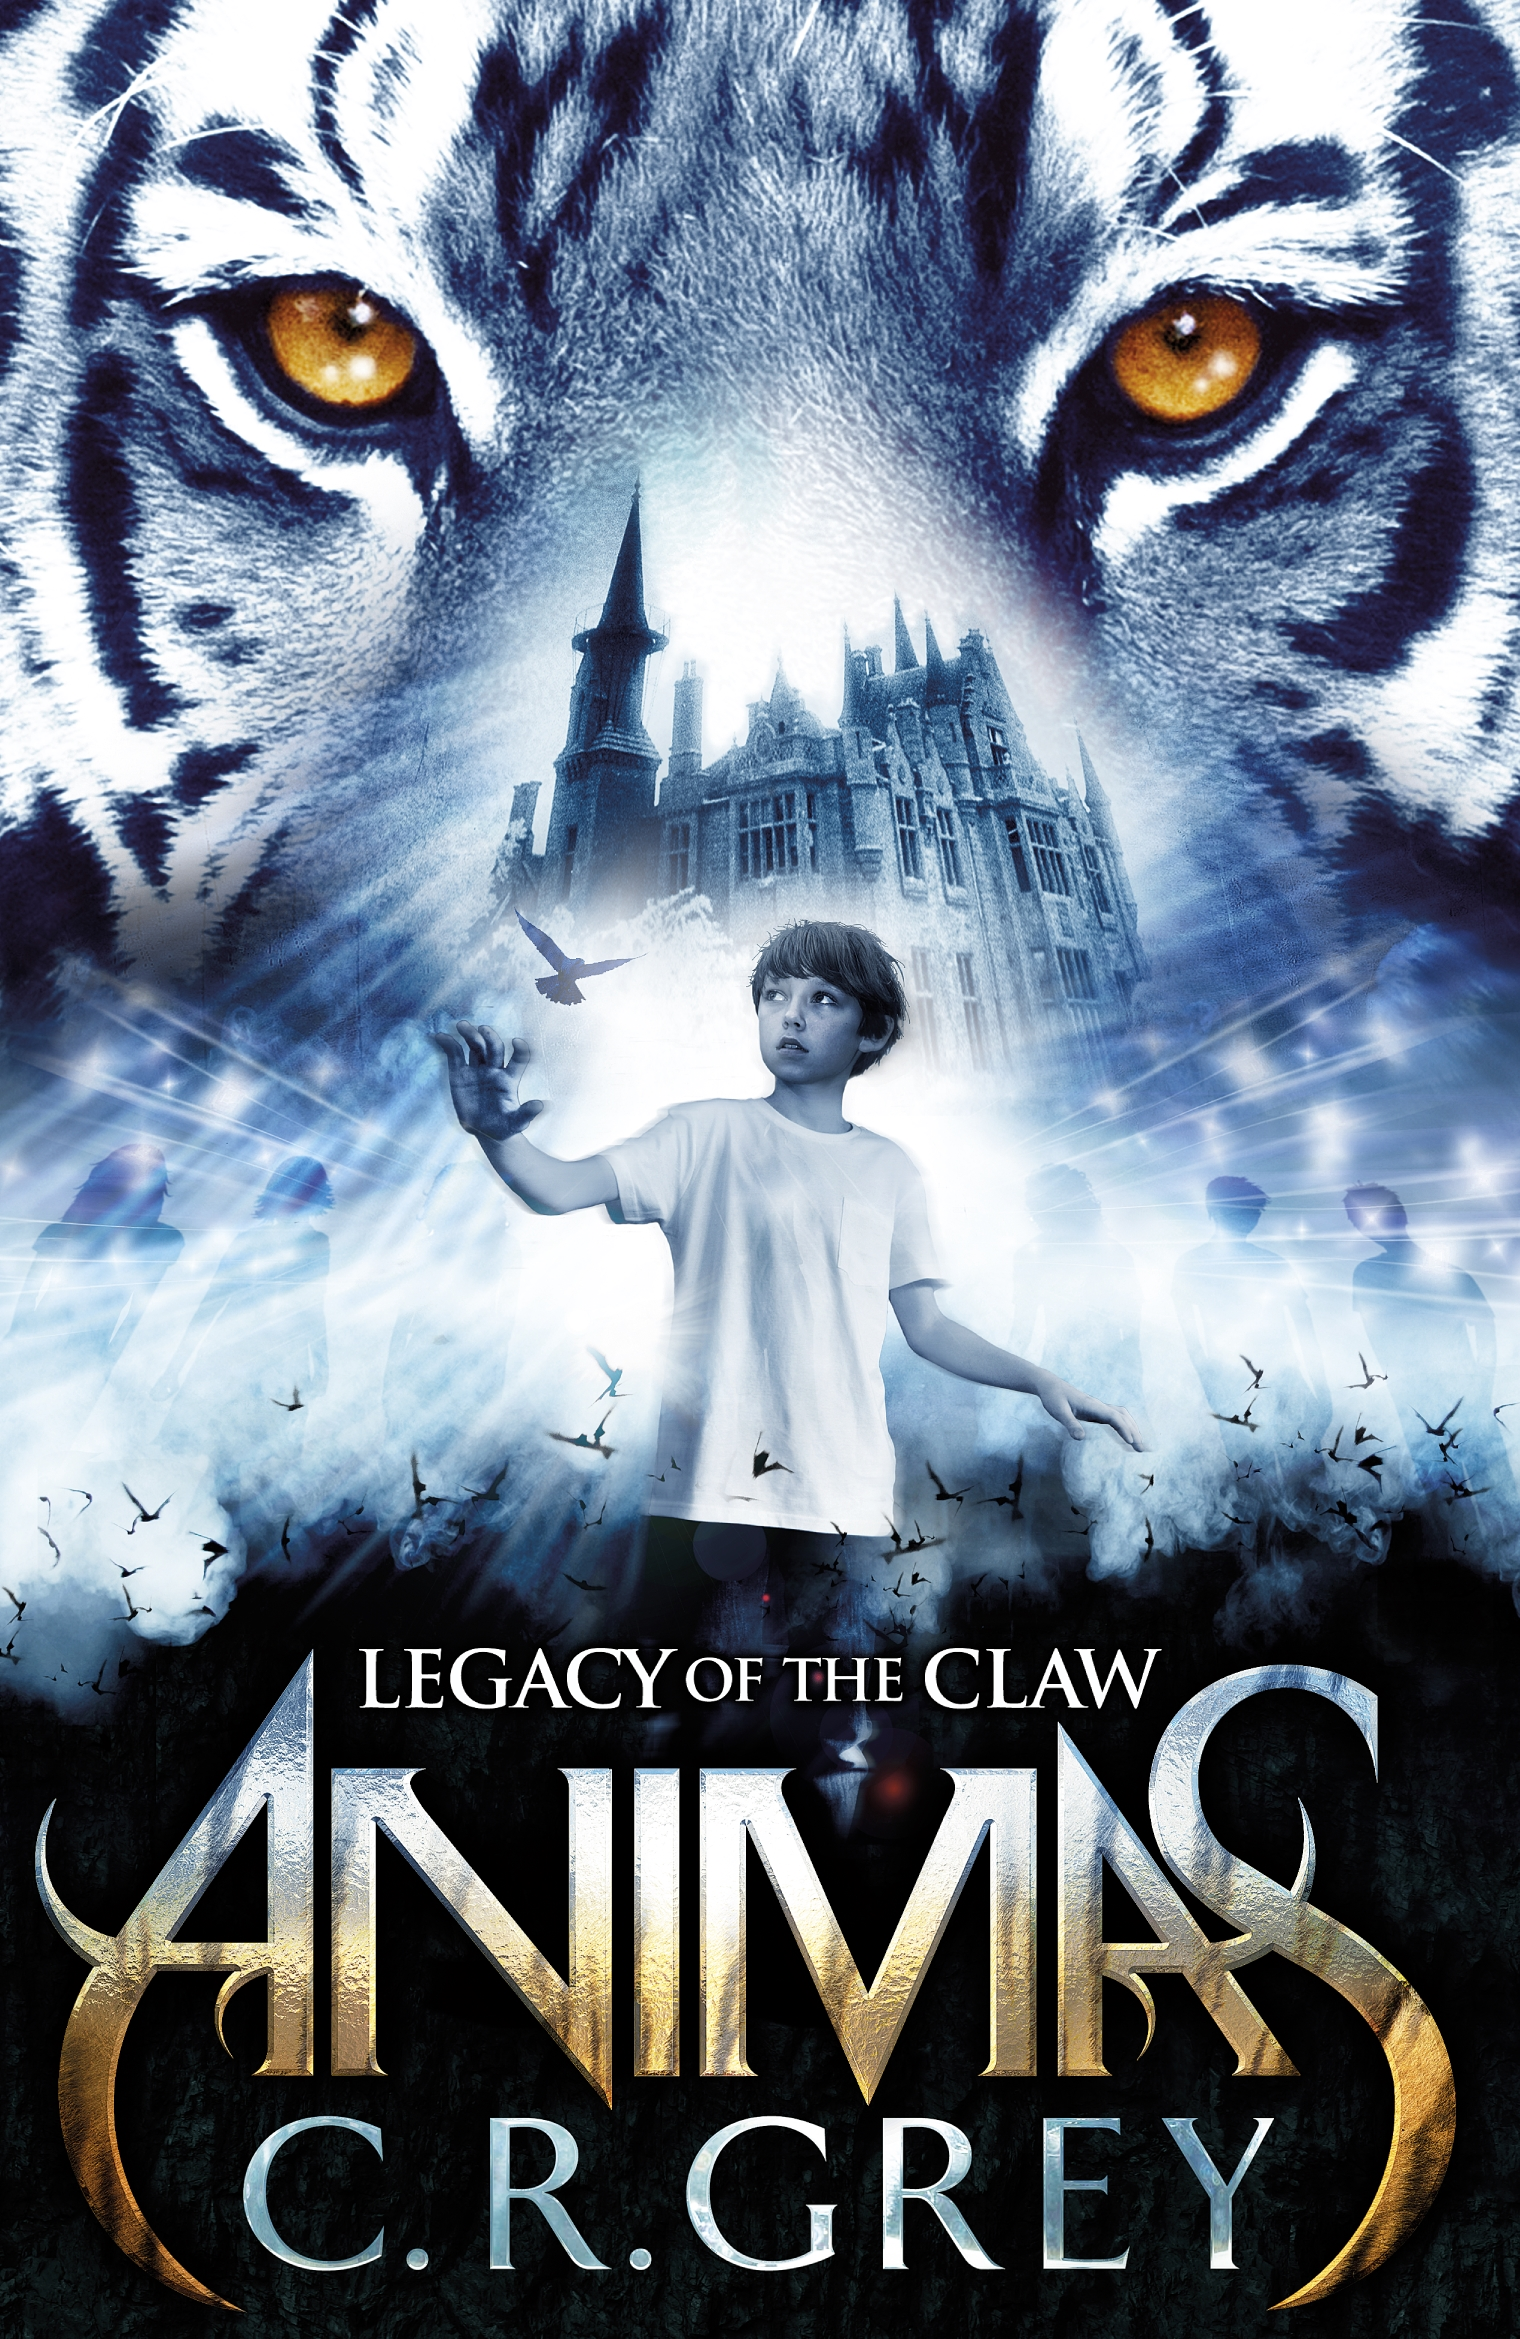 Legacy of the Claw by C. R. Grey